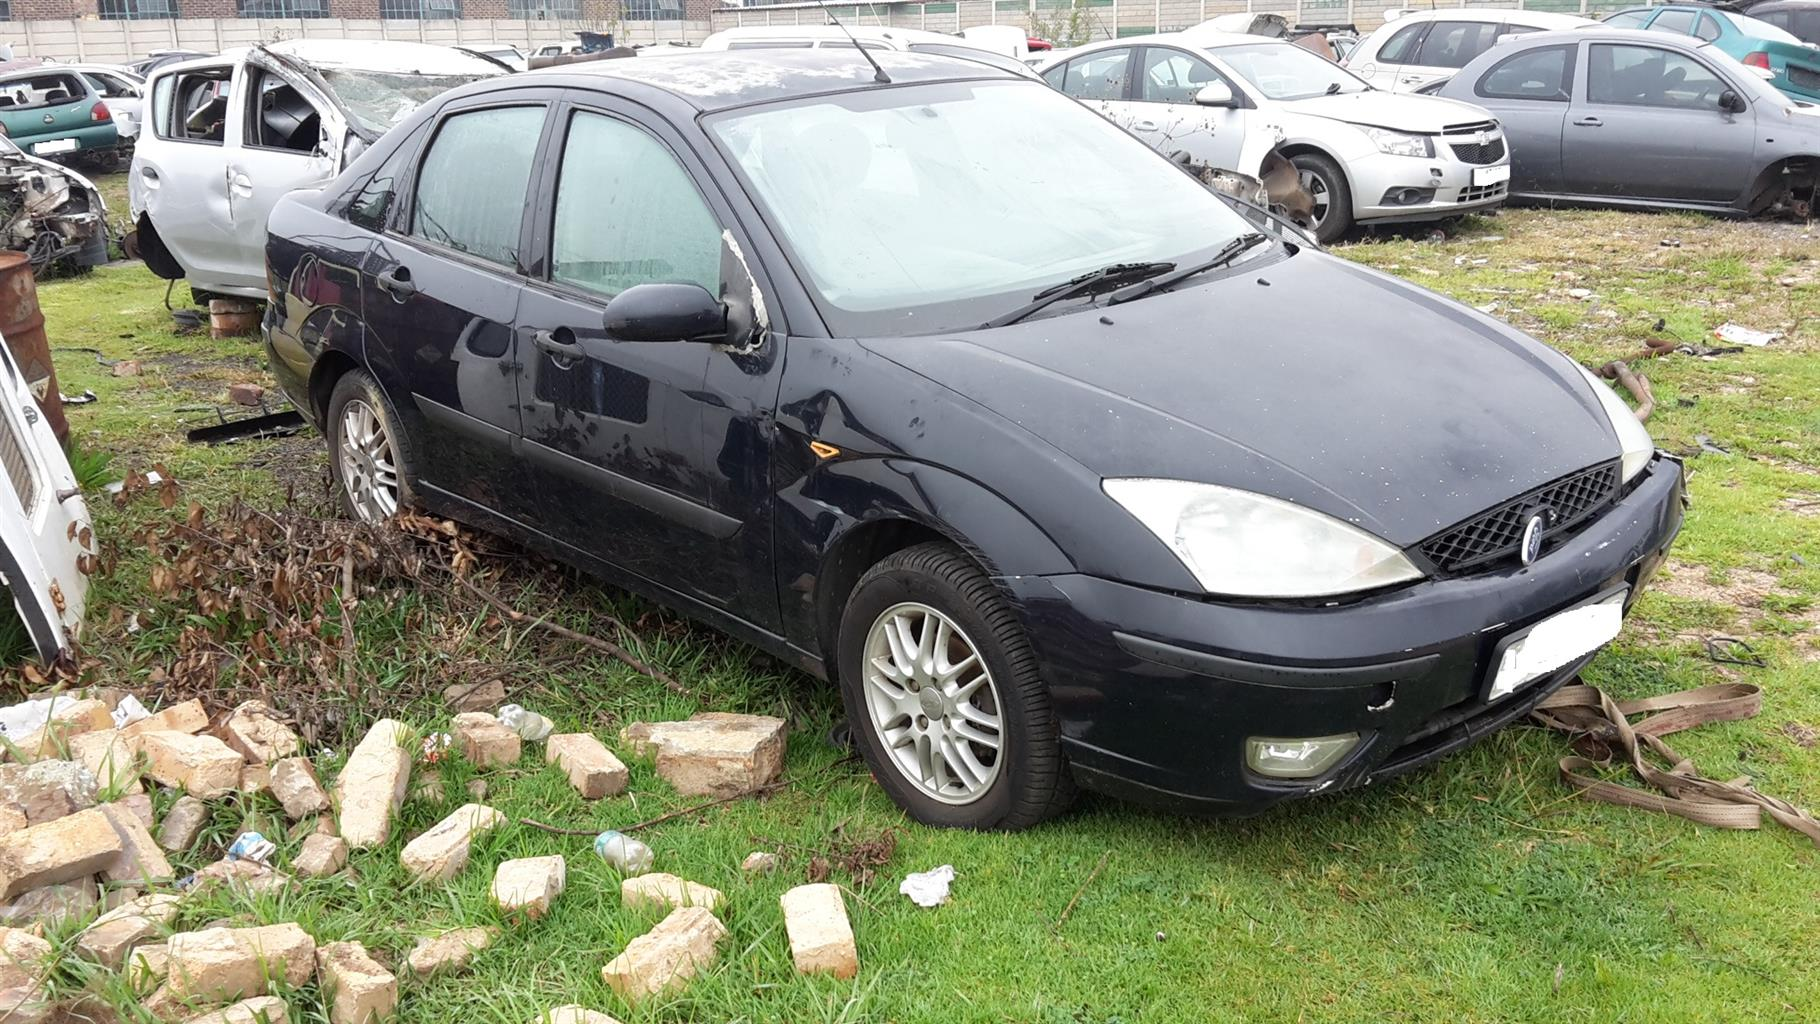 2005 Ford Focus 1.6 Sedan stripping for spare parts